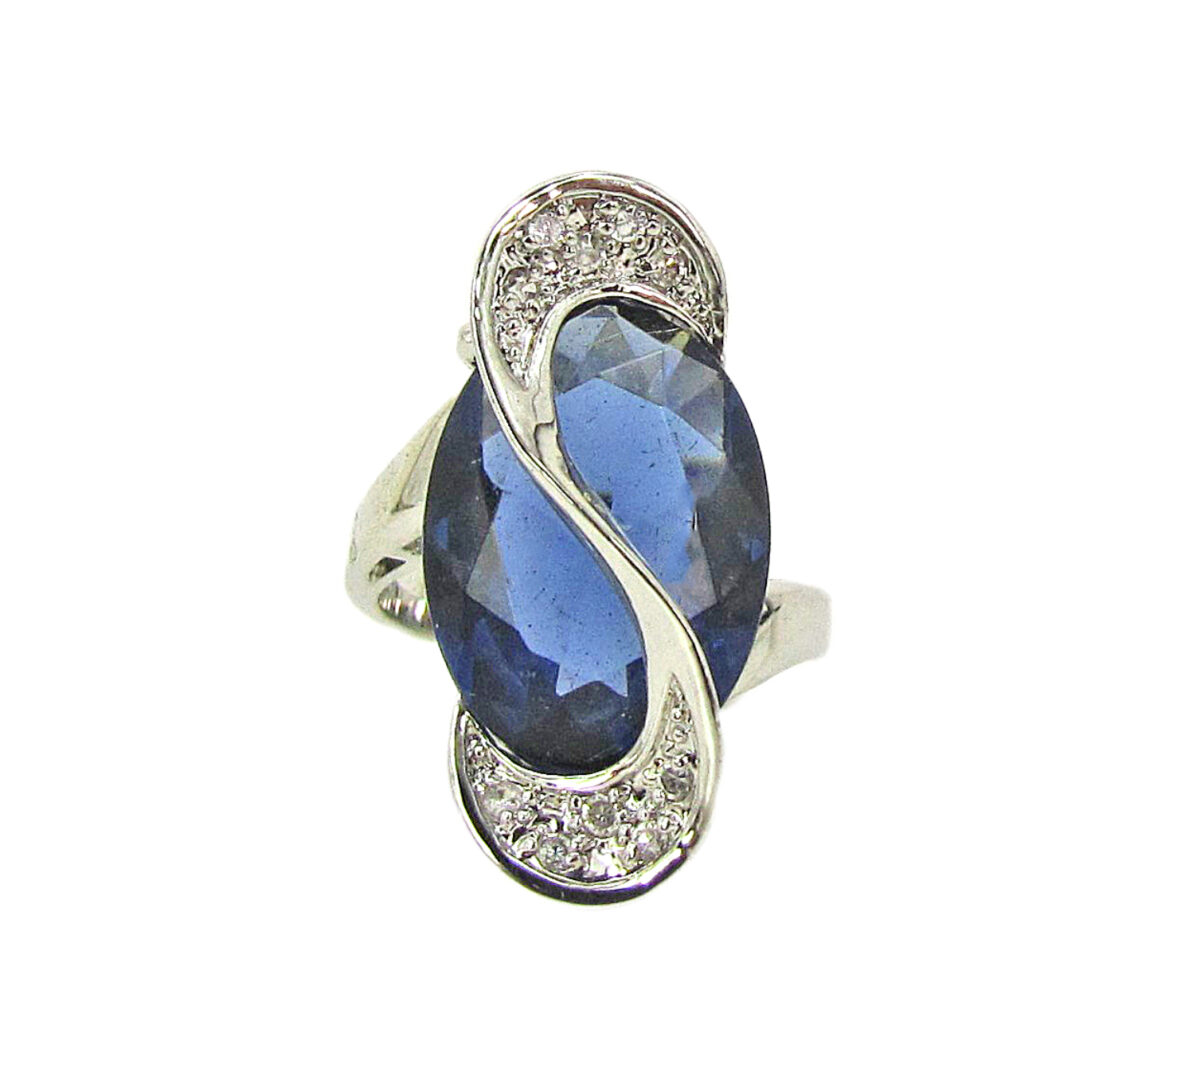 ring with s-shaped accent and a sapphire gem